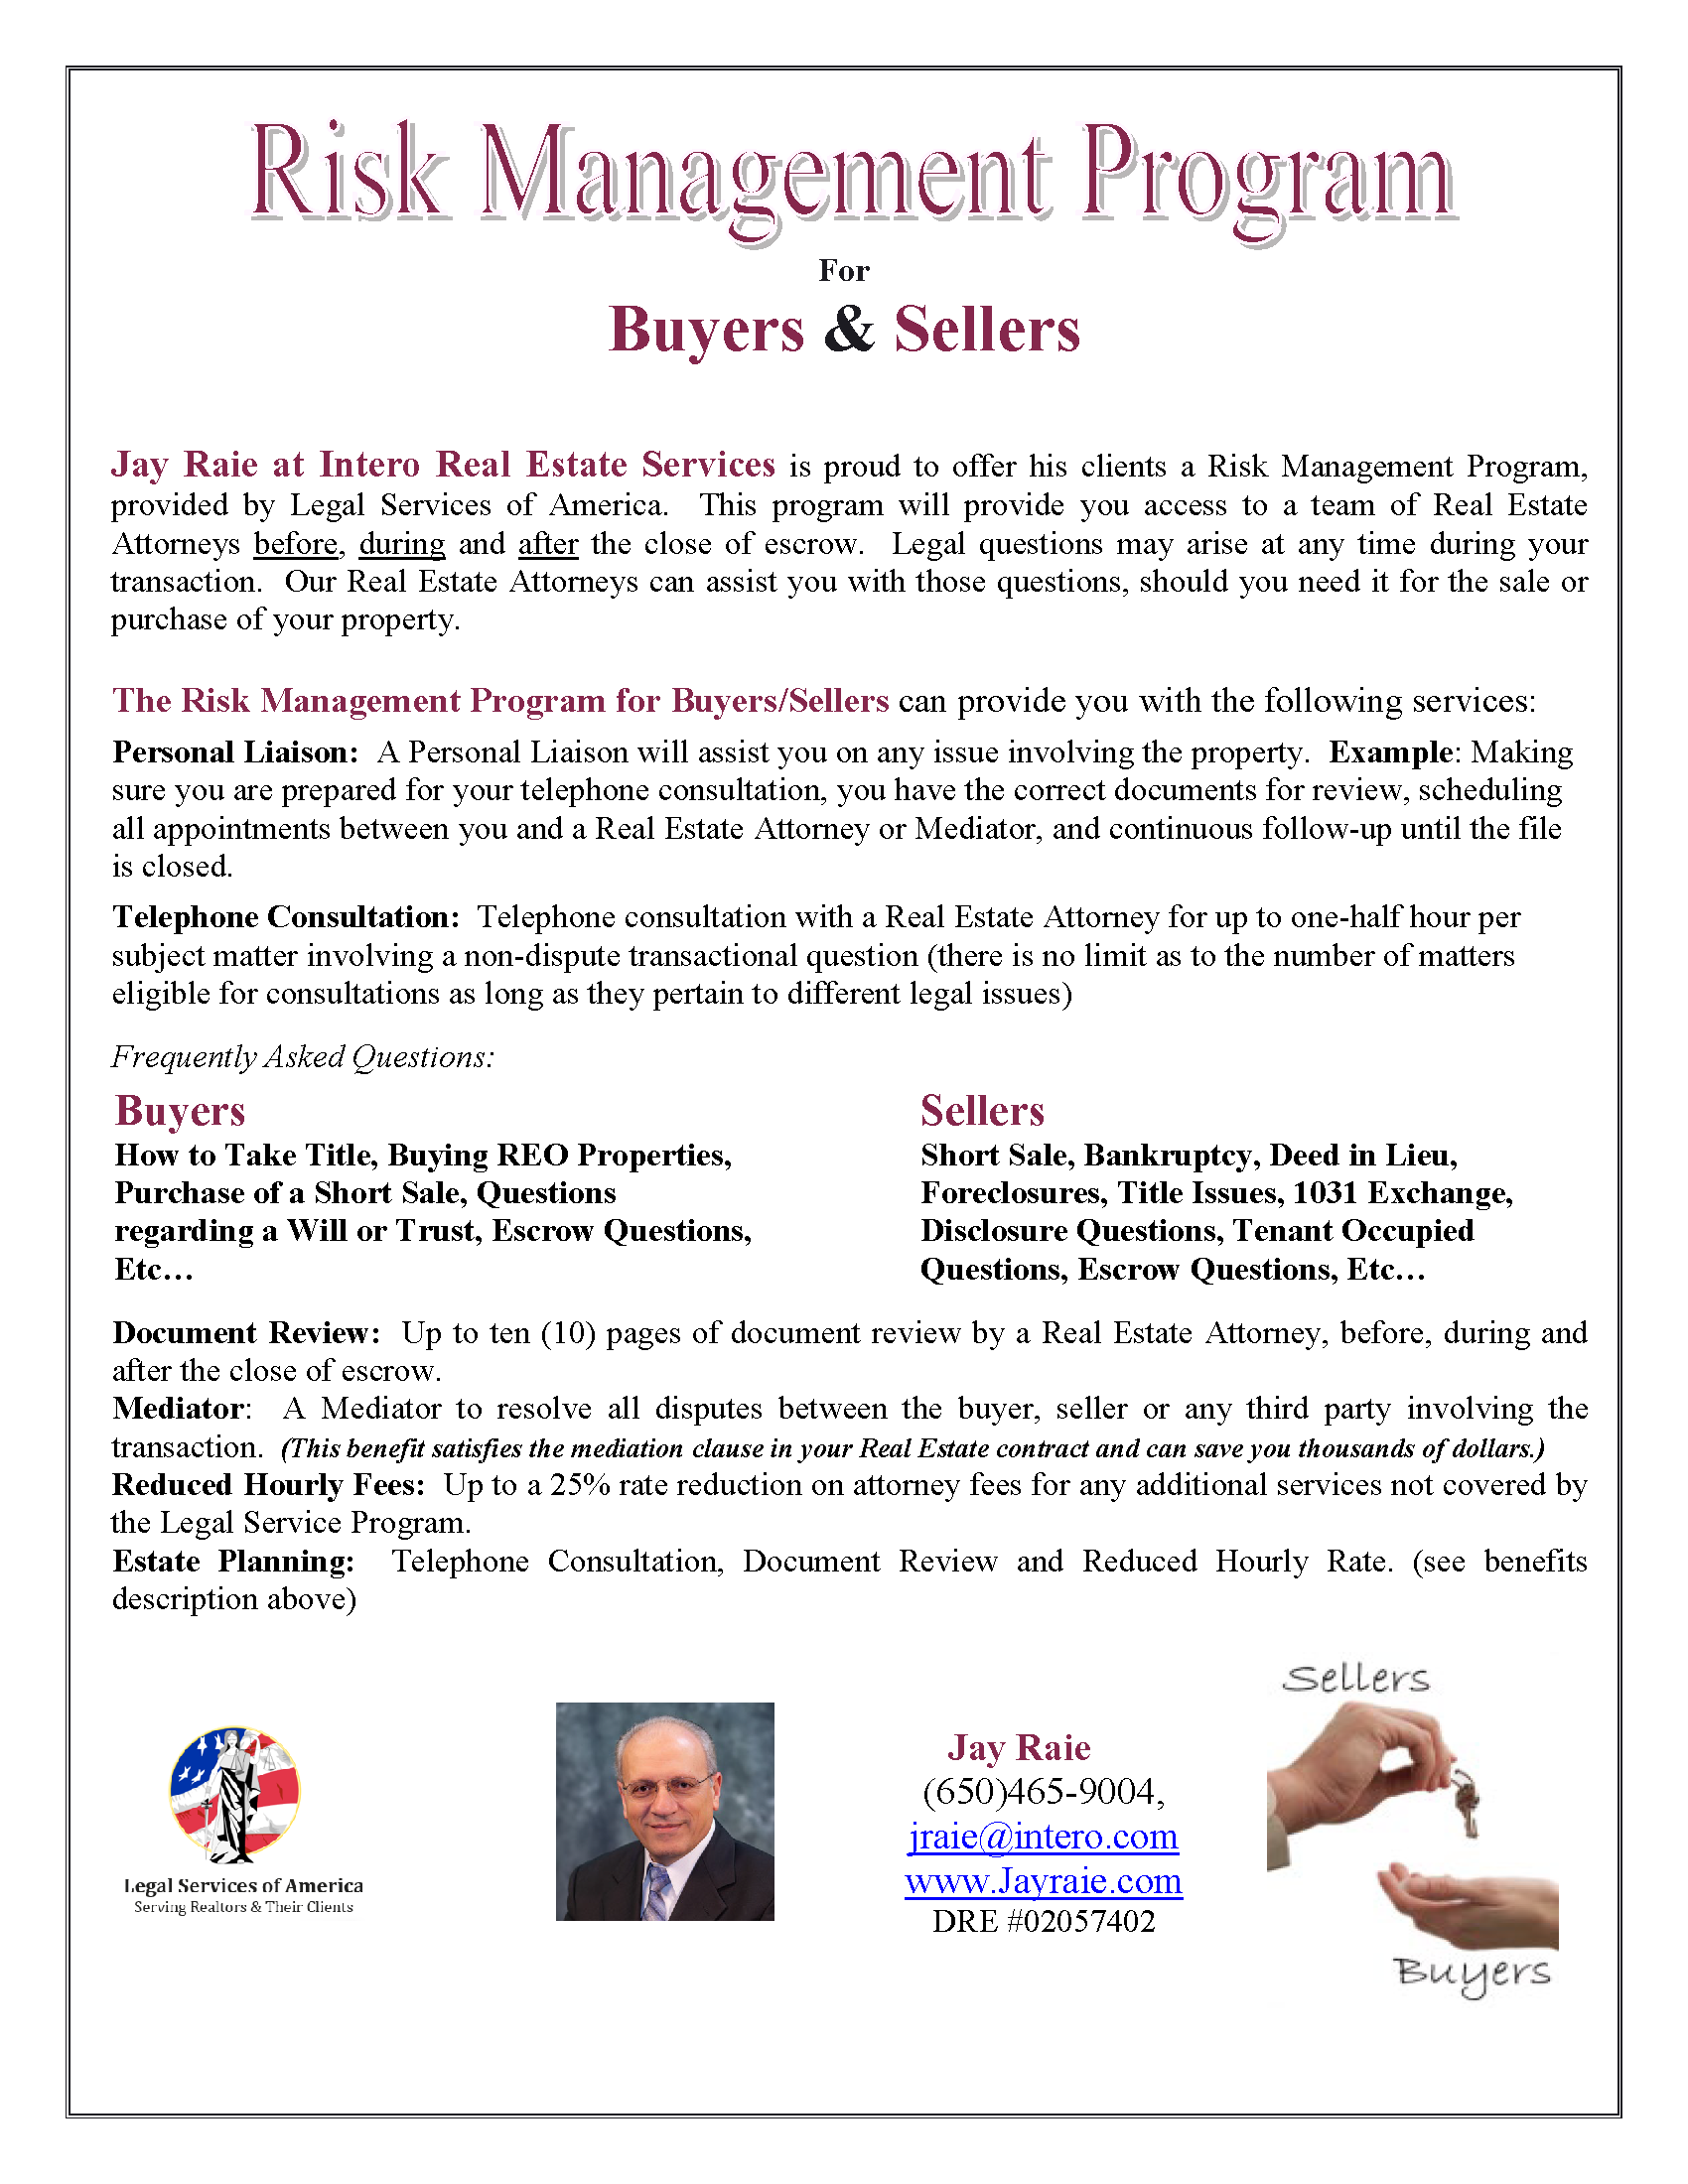 Buyer-Sellers Flyer-LSOA